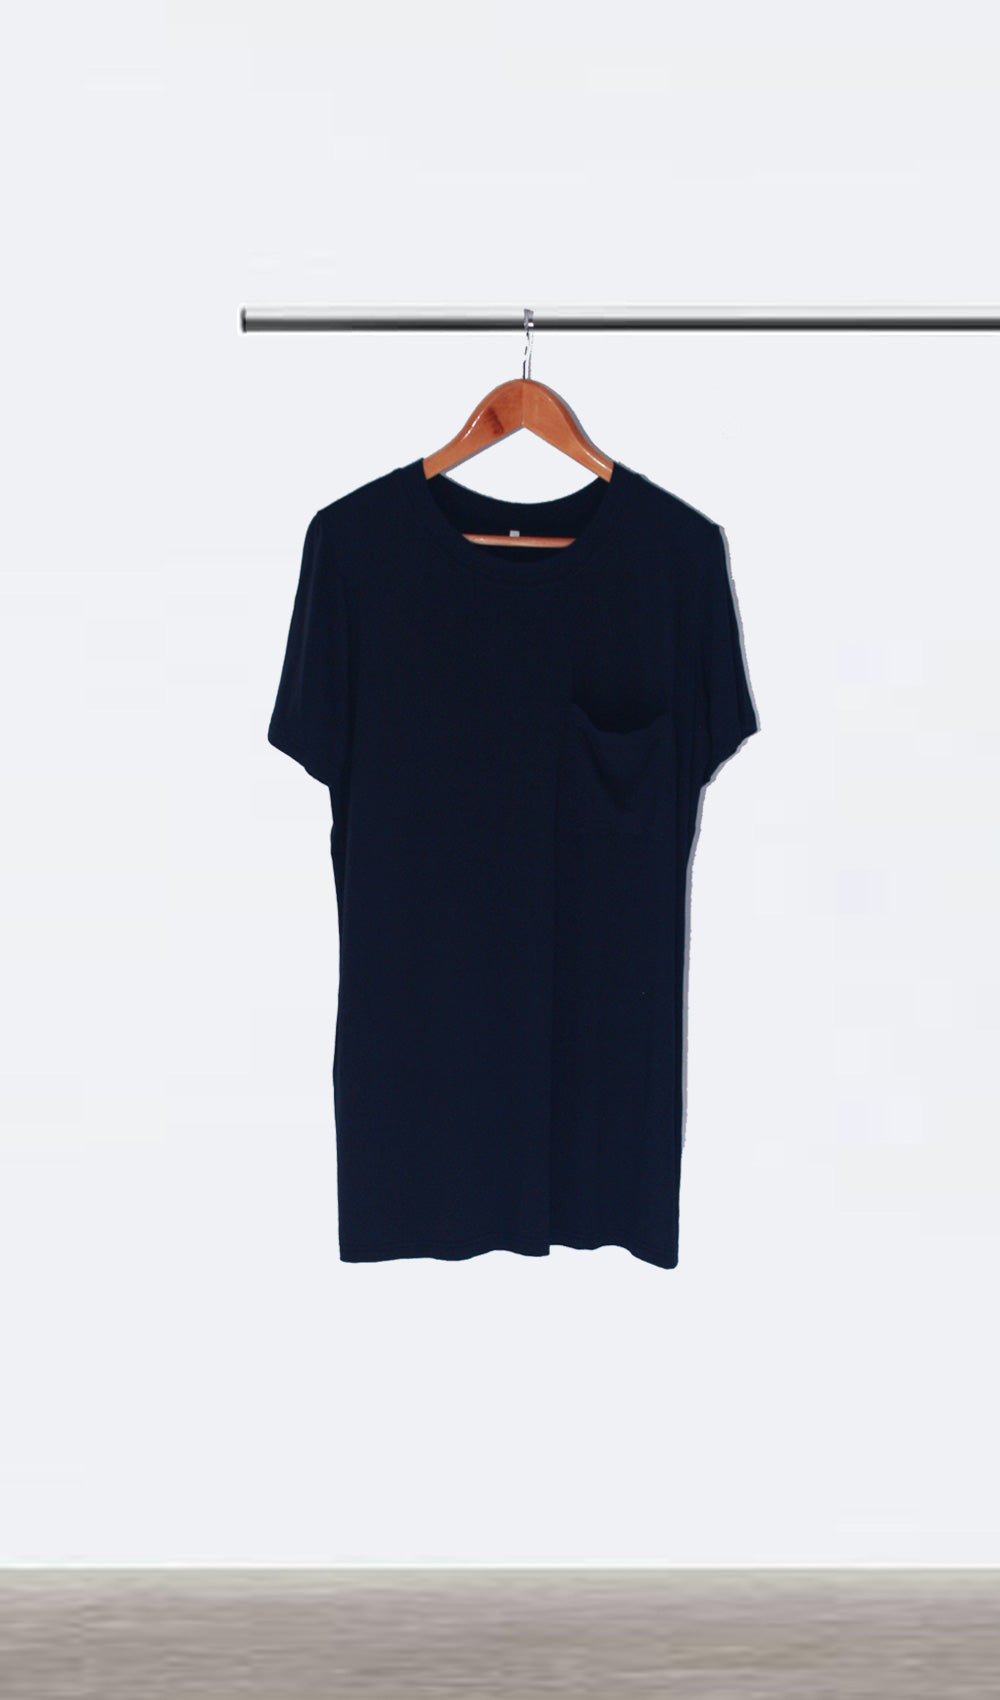 Ellipsis - The Navy Tee Dress